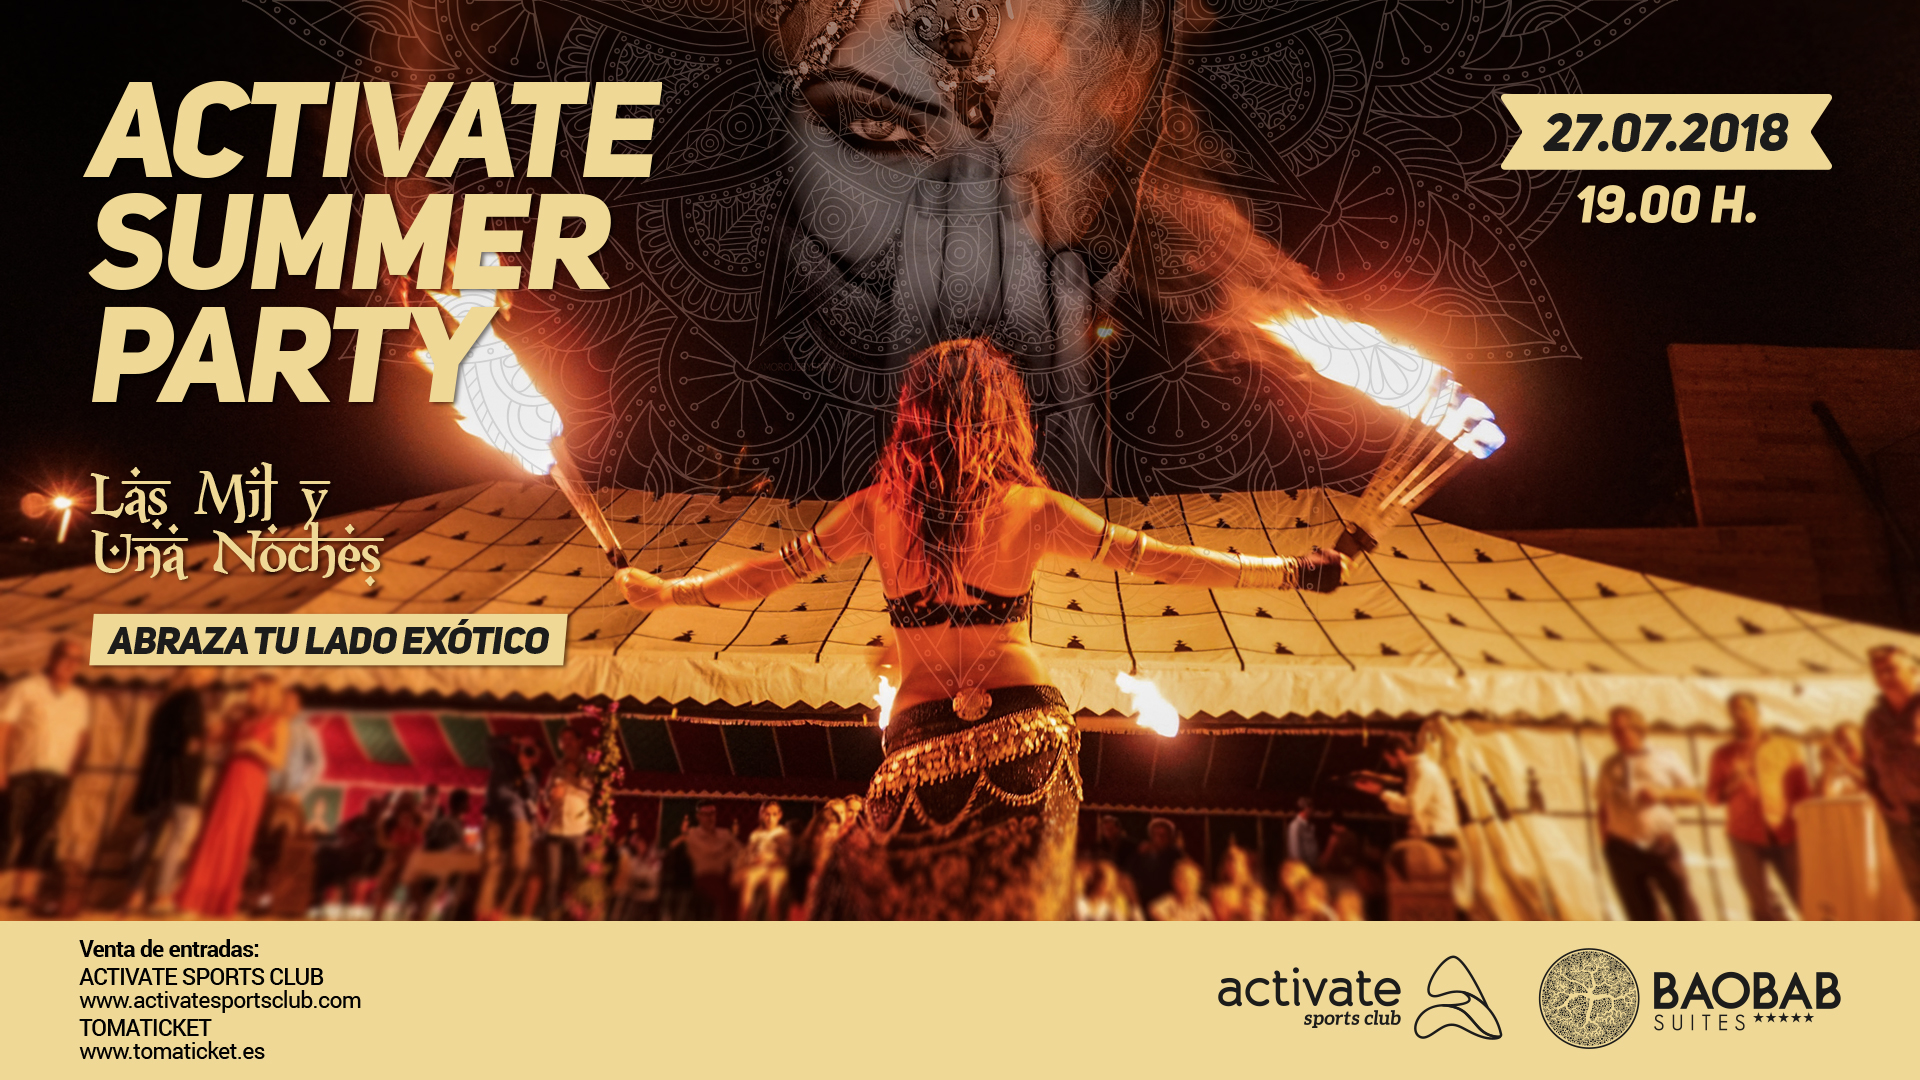 Activate_Summer_Party